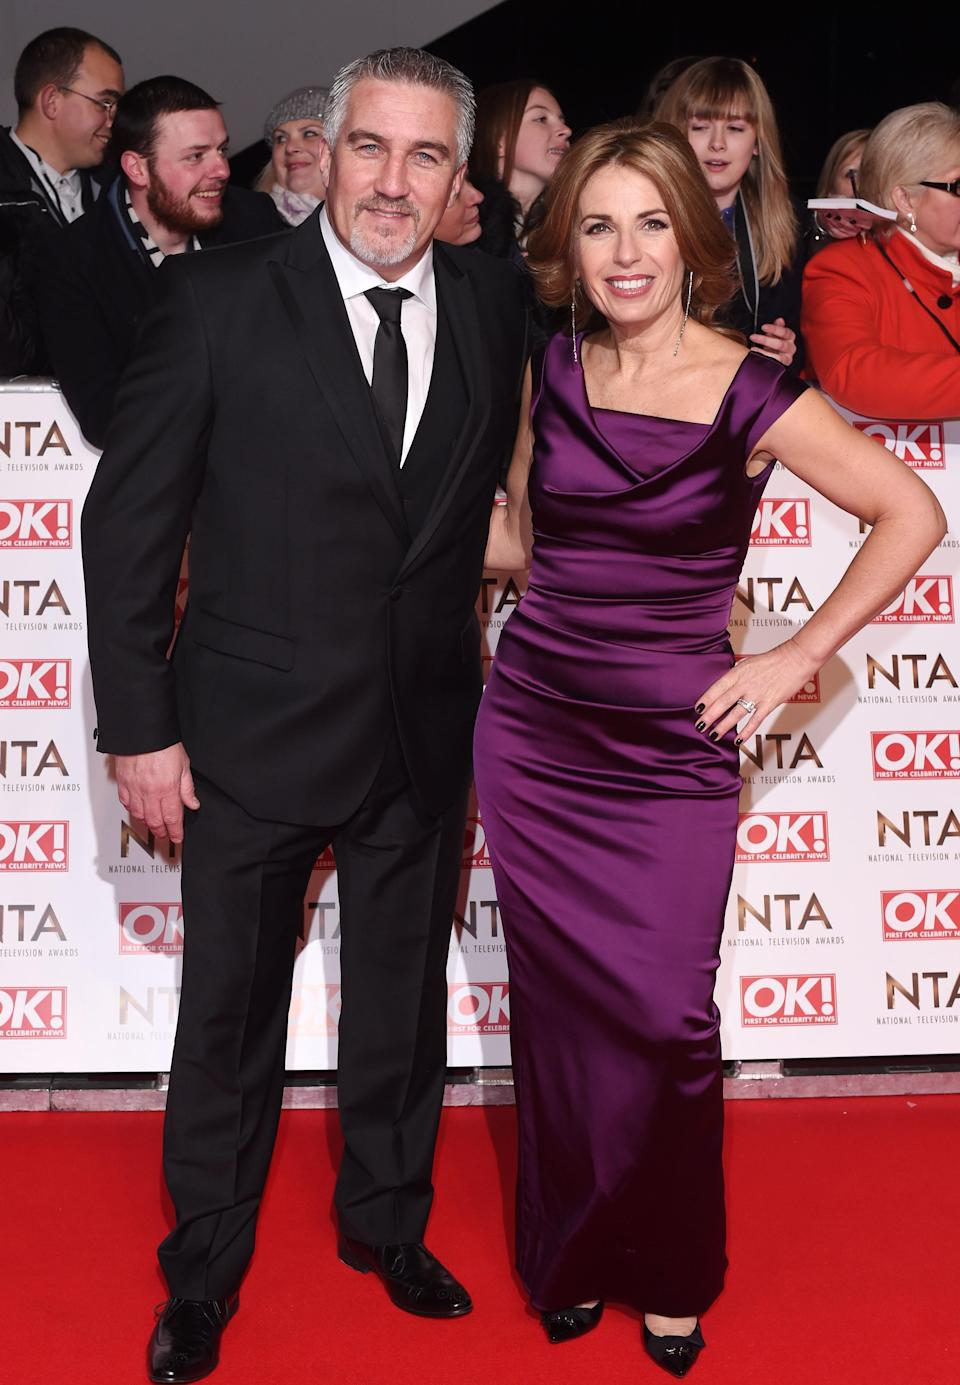 Paul and Alexandra Hollywood were married for nearly 20 years. Copyright [David Fisher/REX/Shutterstock]